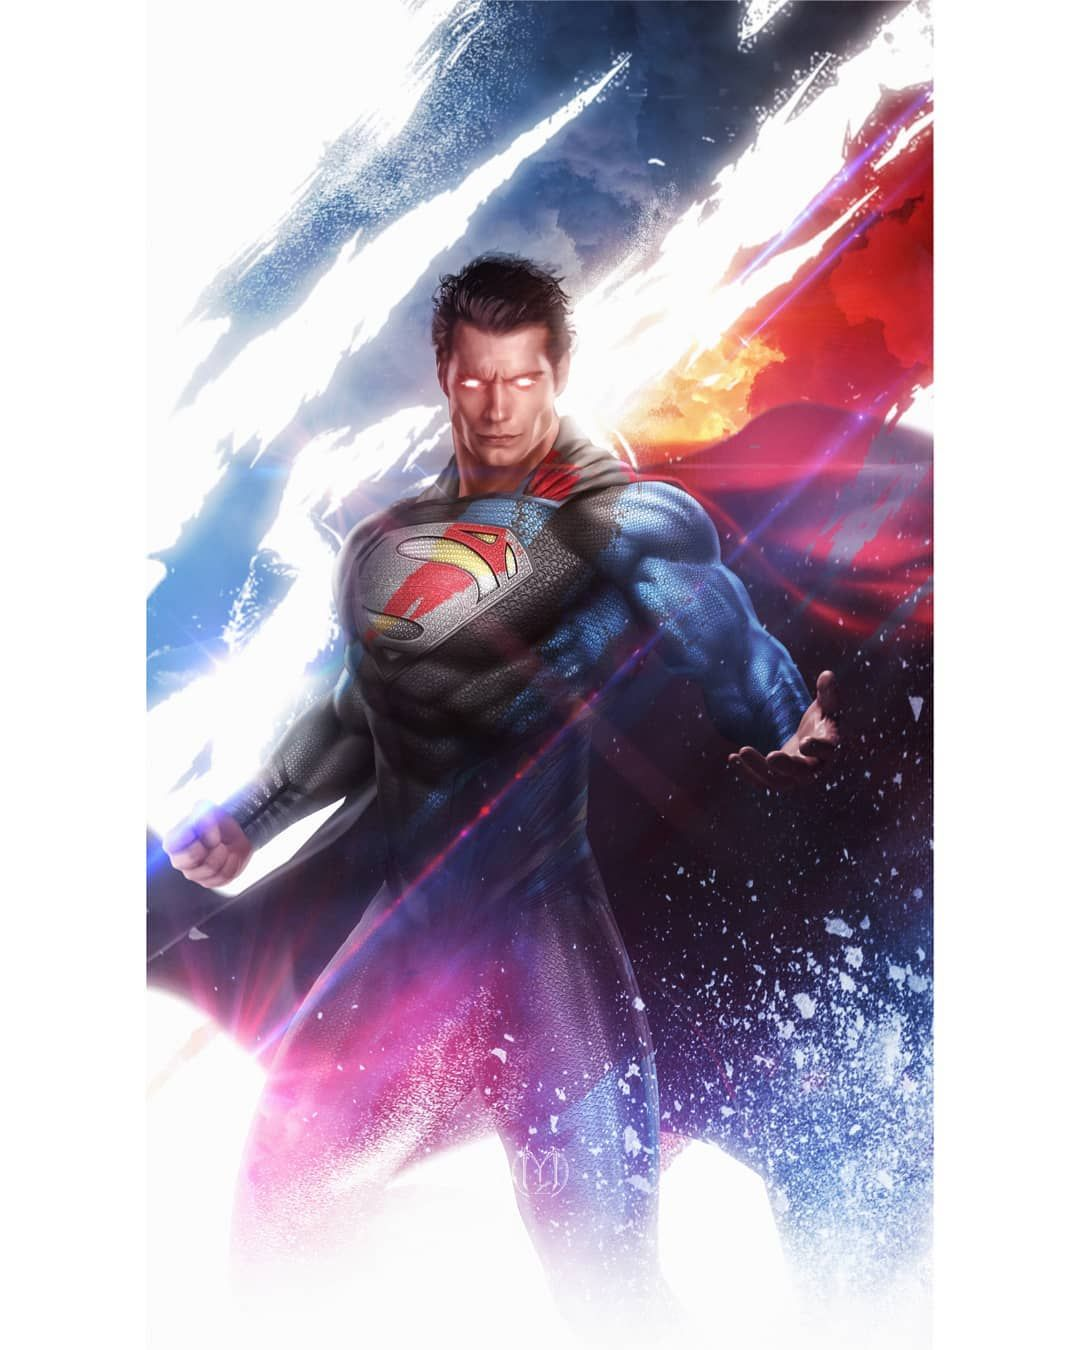 Yadvender Singh Rana On Instagram So This Morning We Saw A Short Clip From The Zack Snyder Justice League In Wh In 2020 Superman Art Man Of Steel Superman Wallpaper